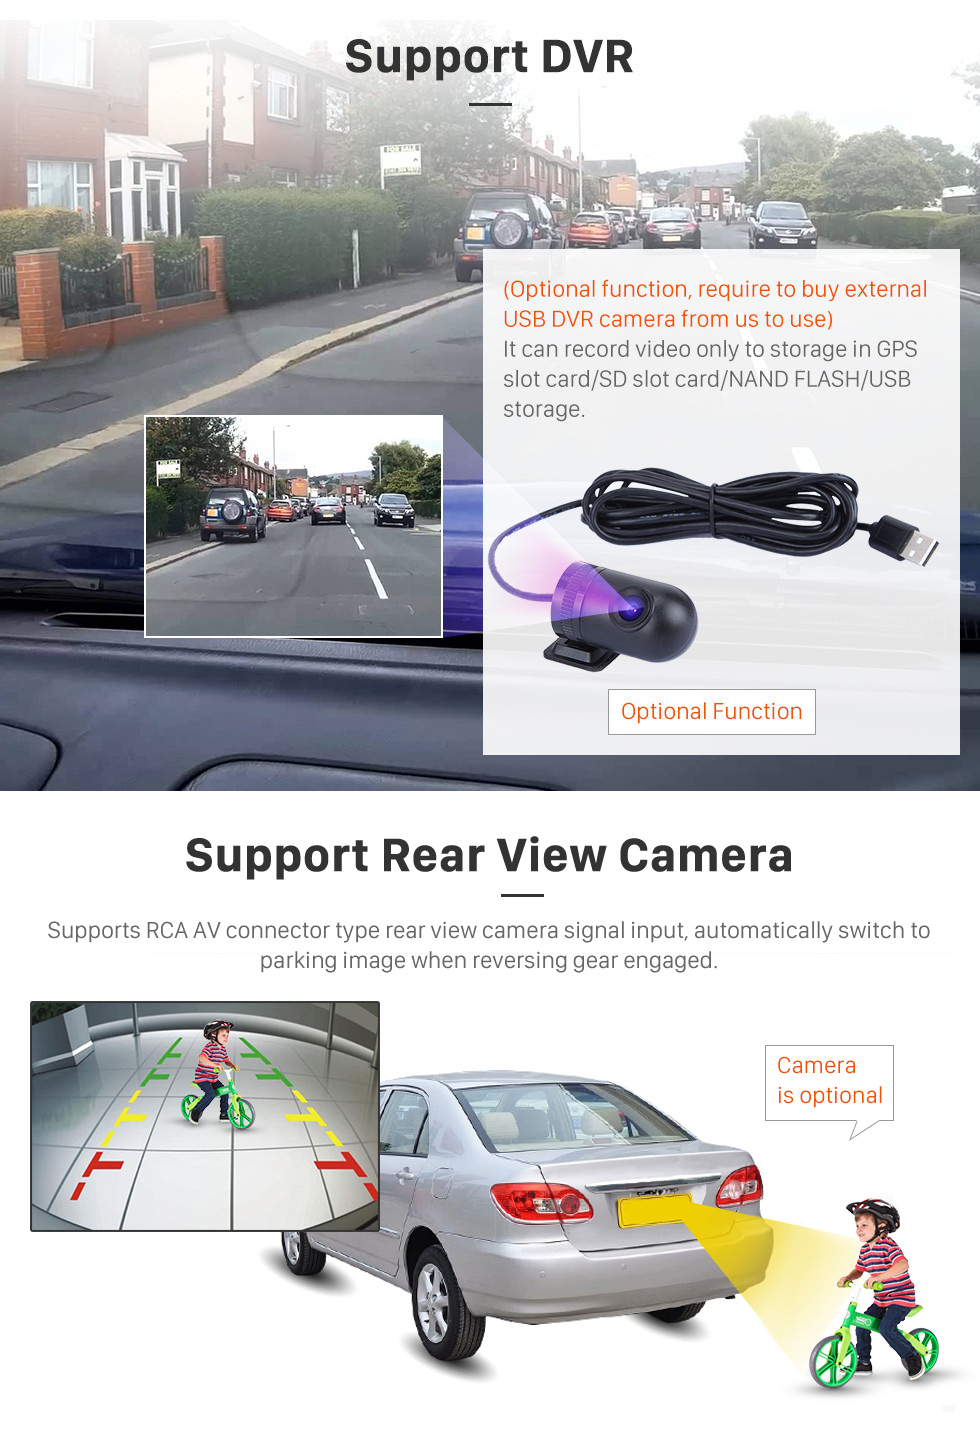 Seicane 10.1 inch Quad-core Android 9.0 Autoradio GPS navigation system for 2013 2014 2015 Toyota LEVIN Bluetooth HD touch screen stereo support OBD DVR  Rear view camera Mirror link  DVD player TV USB SD 3G WIFI